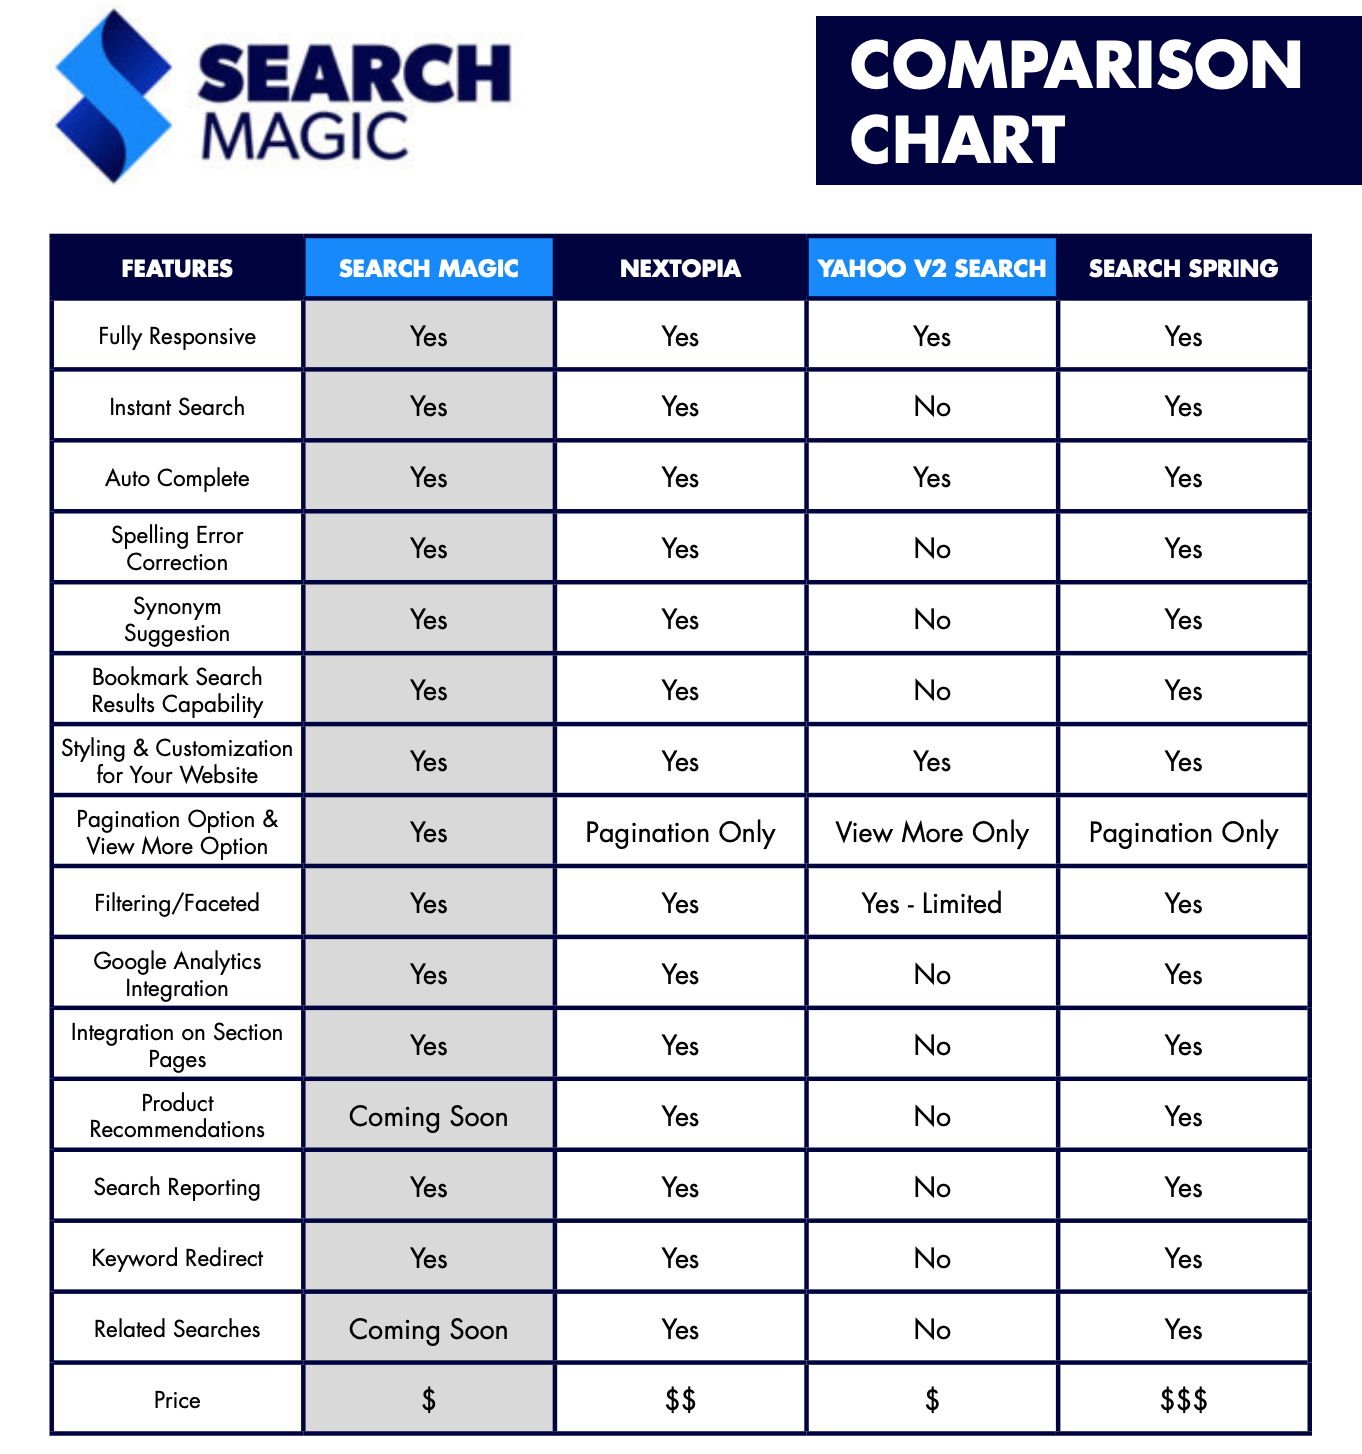 Search Magic Comparison Chart